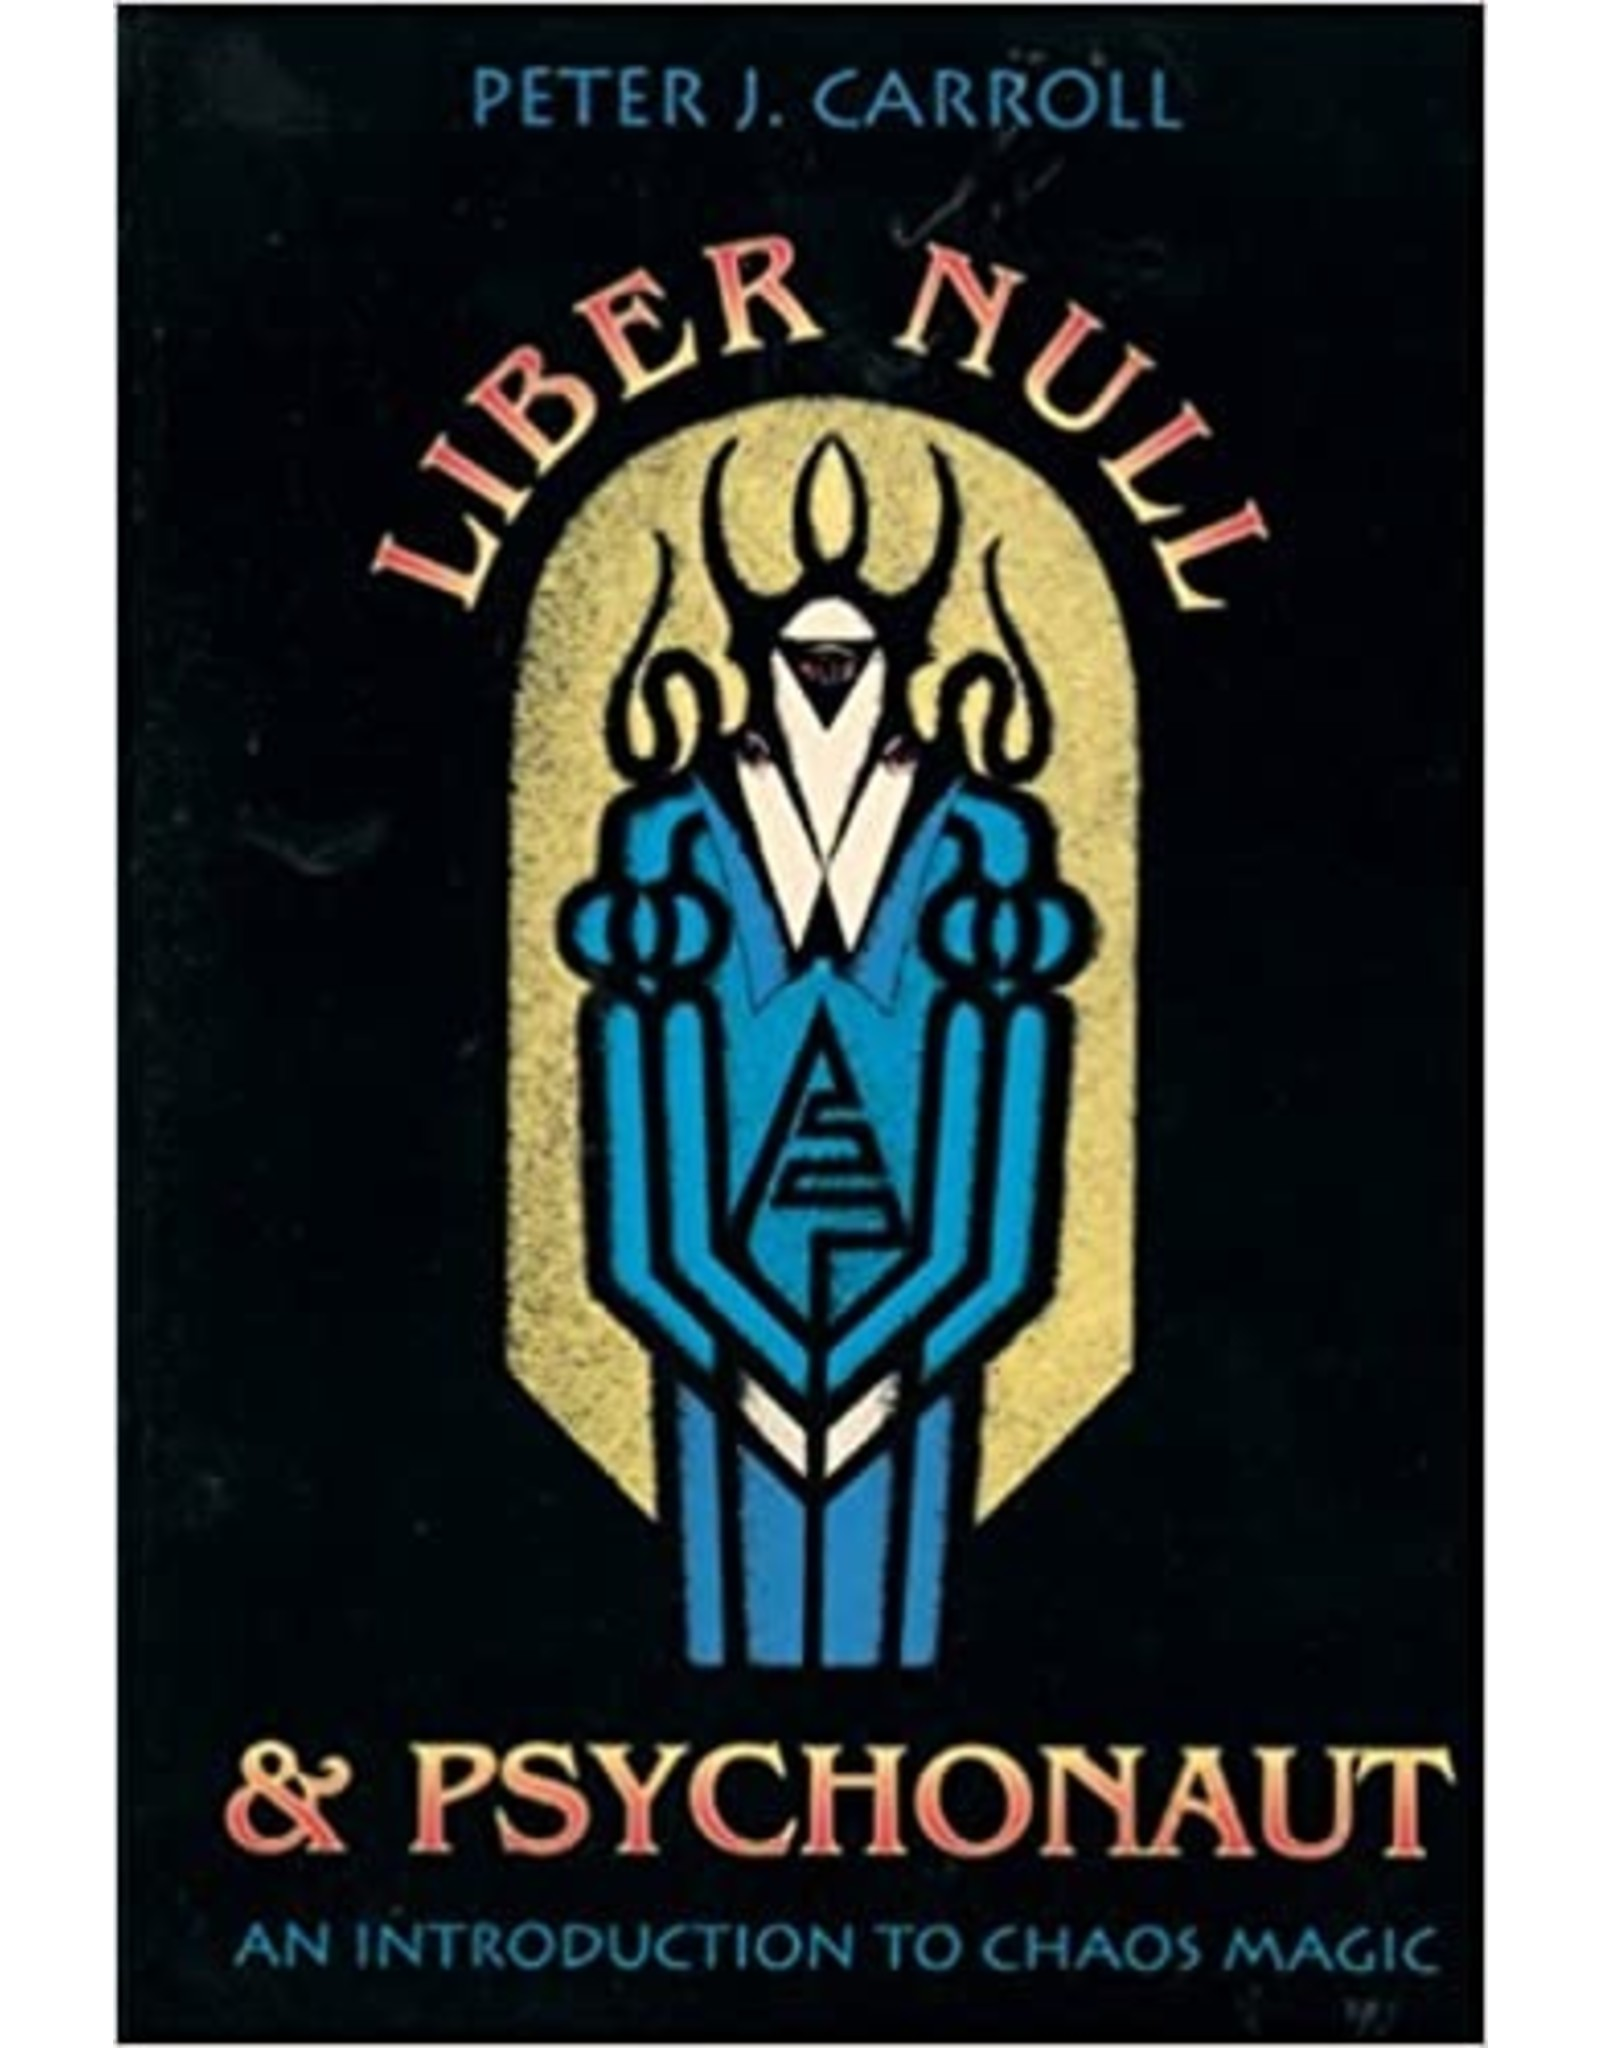 Liber Null & Psychonaunt: An Introduction to Chaos Magic